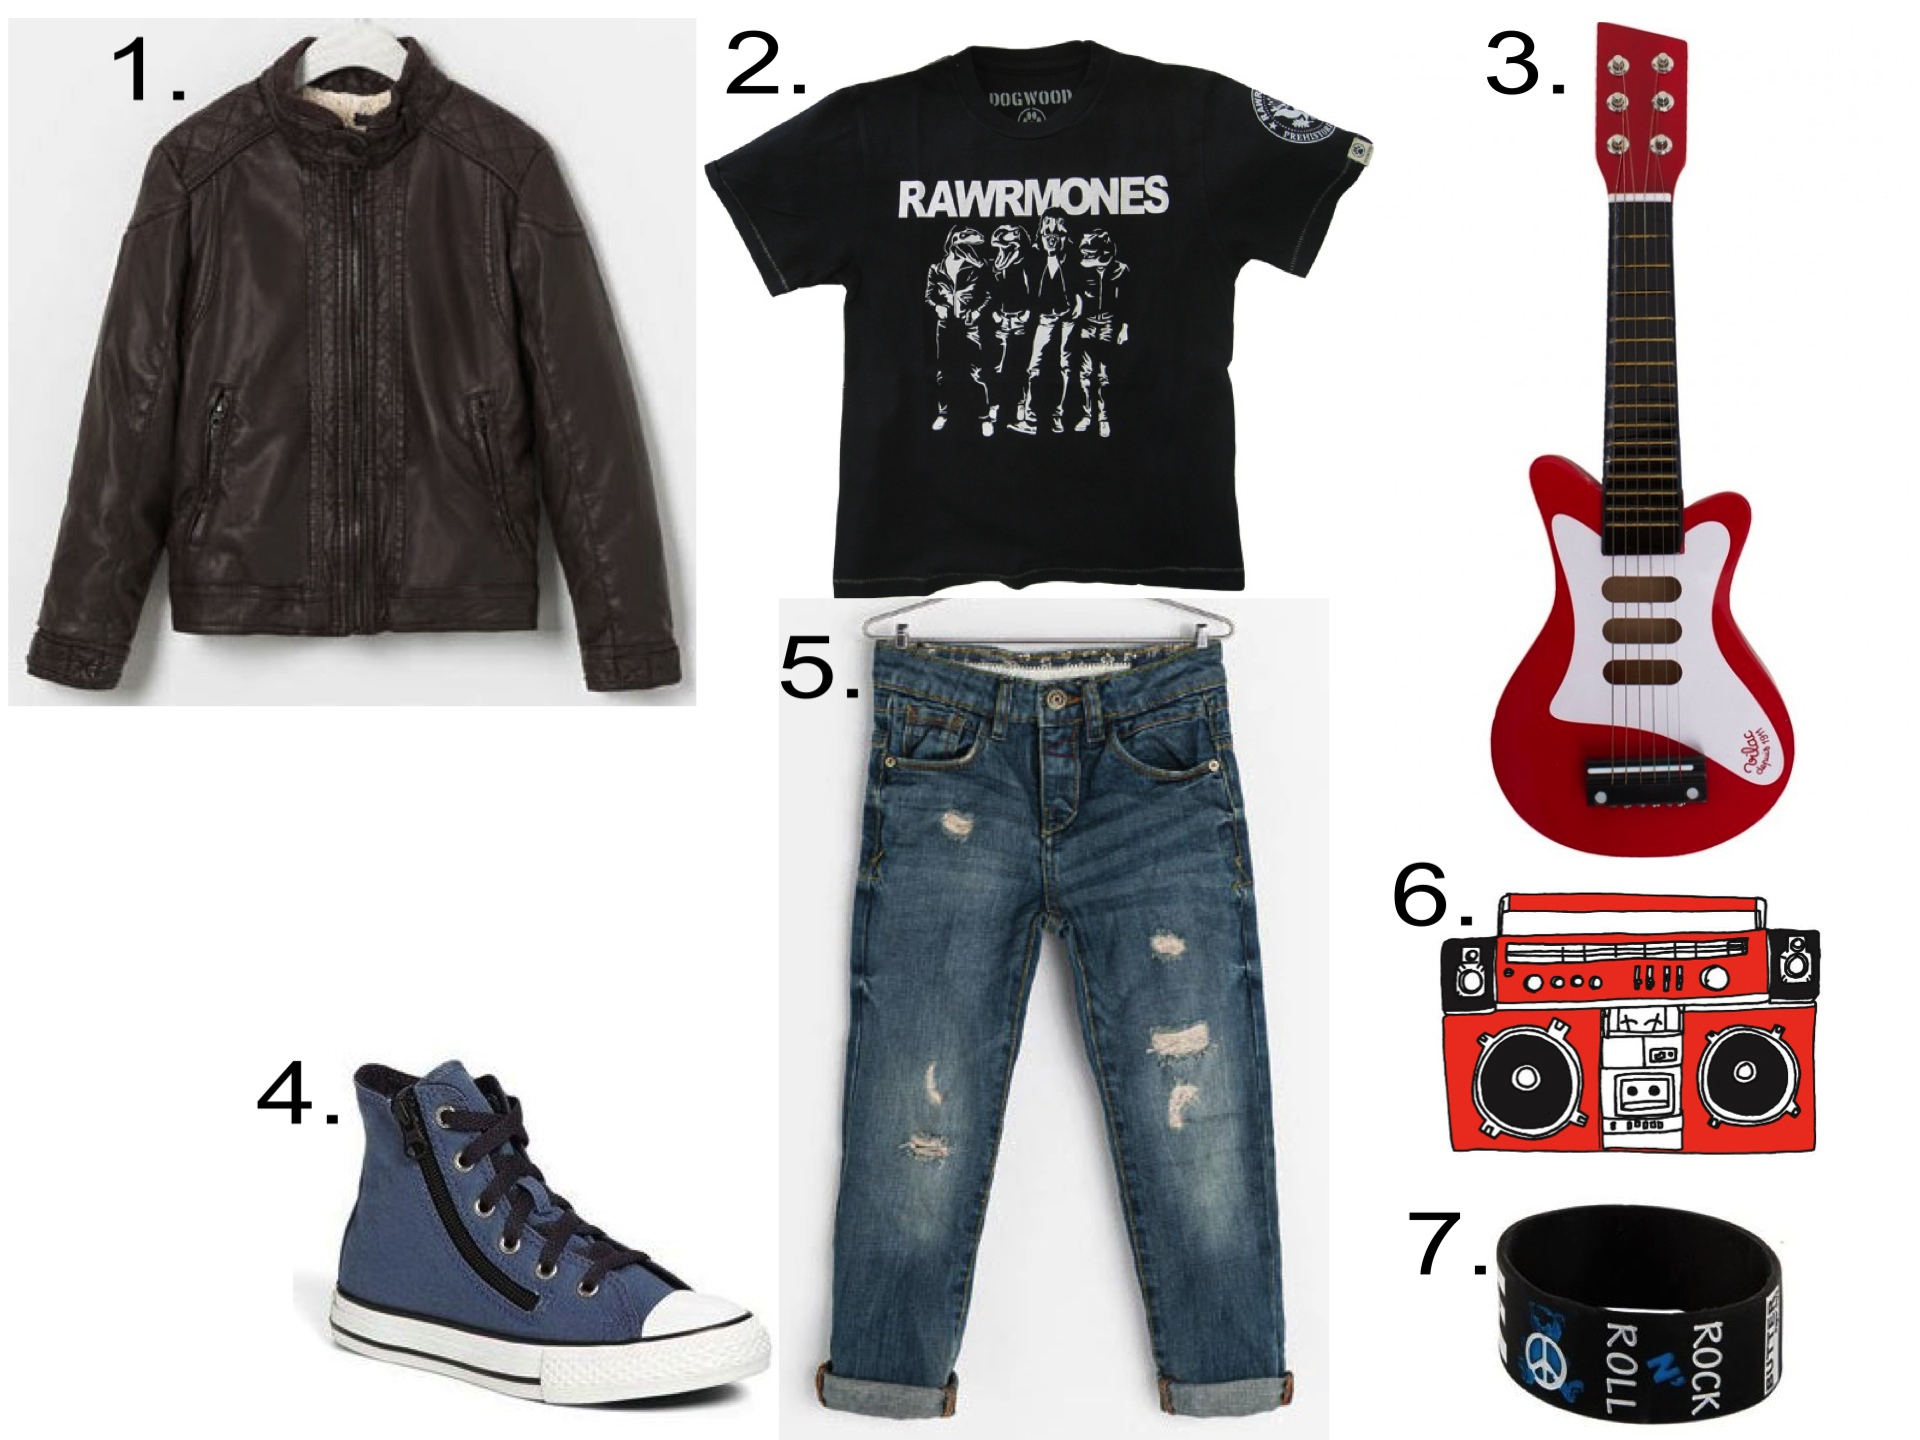 A cute outfit for your future Rawrmone!  1.  Zara FAUX LEATHER JACKET  |2.  Dogwood Rawrmones Tee |3. Vilac Red Wooden Guitar |4. Converse Chuck Taylor® All Star® High-Top Sneaker  |5.  Zara RIPPED DENIM TROUSERS |6.  Tattly MINI STEREO Temporary Tattoo |7. KIDS TEDDY BEAR ROCK N' ROLL BUTTER BRACELET